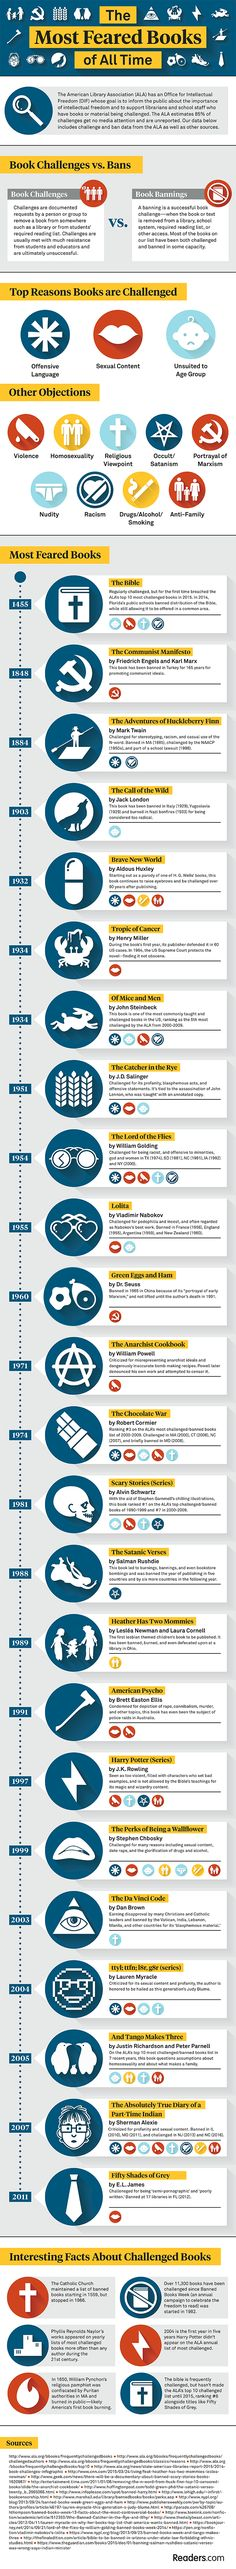 The most feared books of all time infographic - by Readers.com. Piggy's glasses!